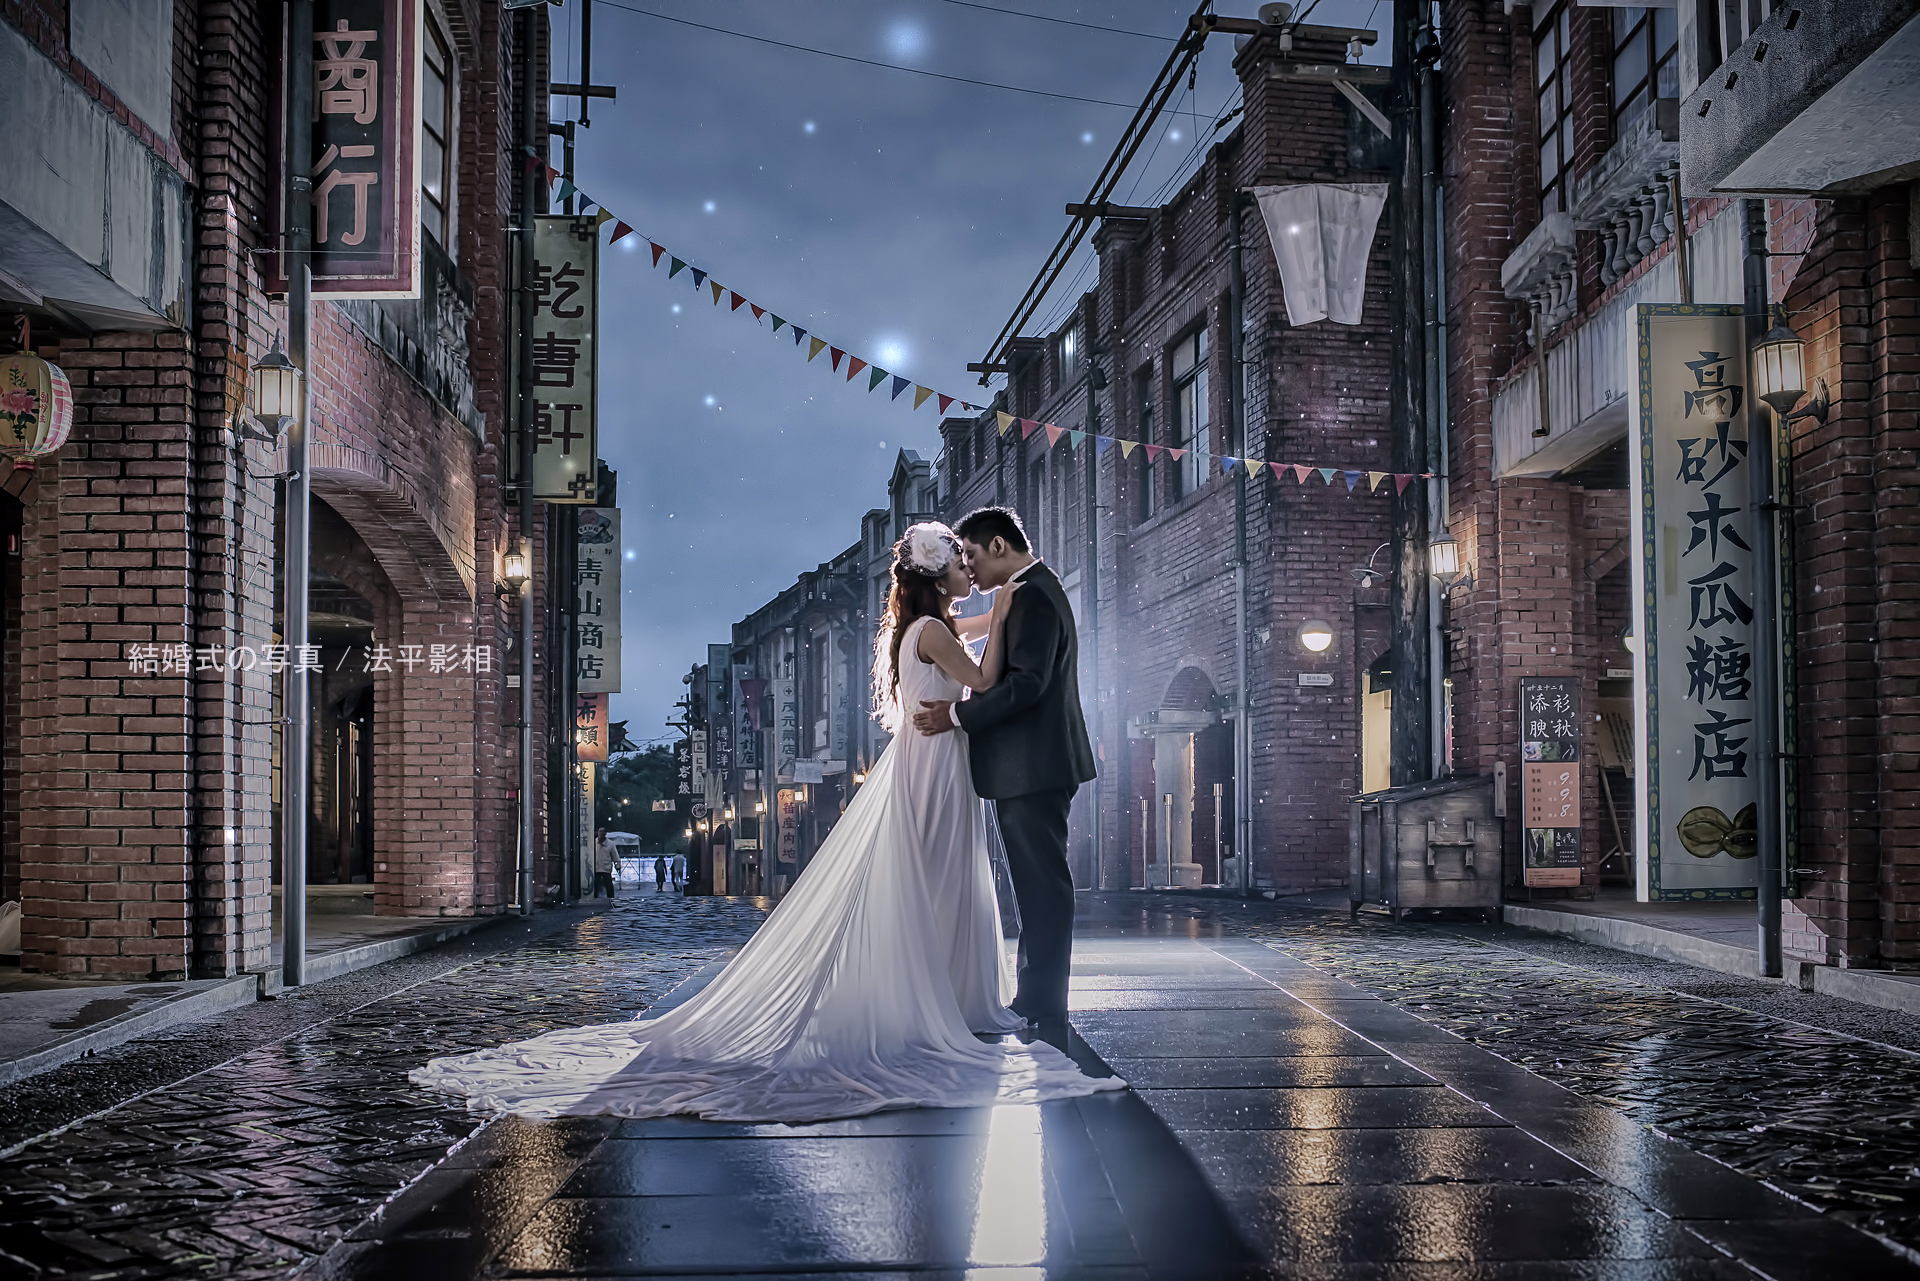 Kiss on the street by Eric Tan